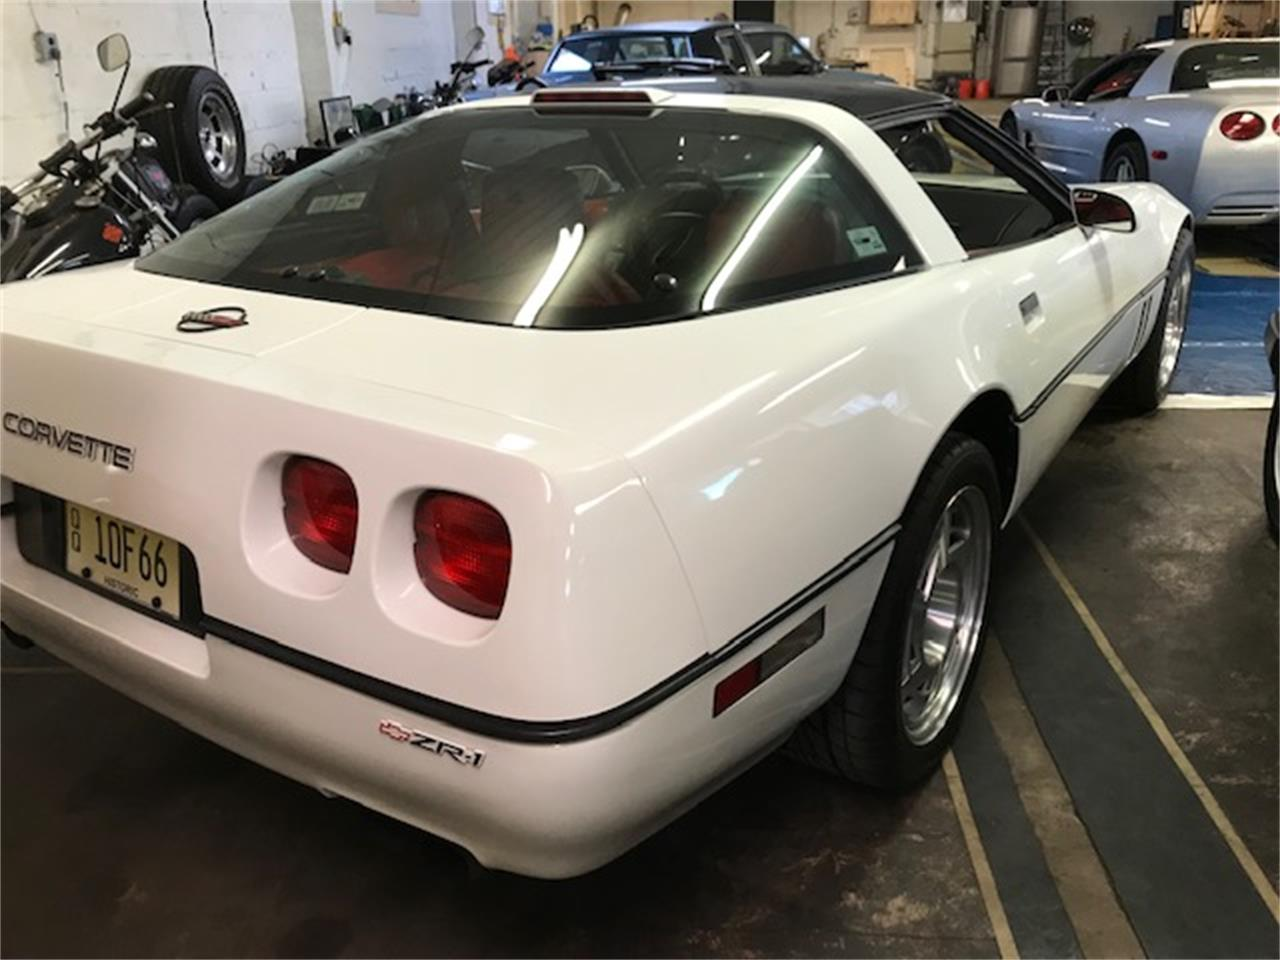 1990 Chevrolet Corvette (CC-1245757) for sale in Brooklawn, New Jersey